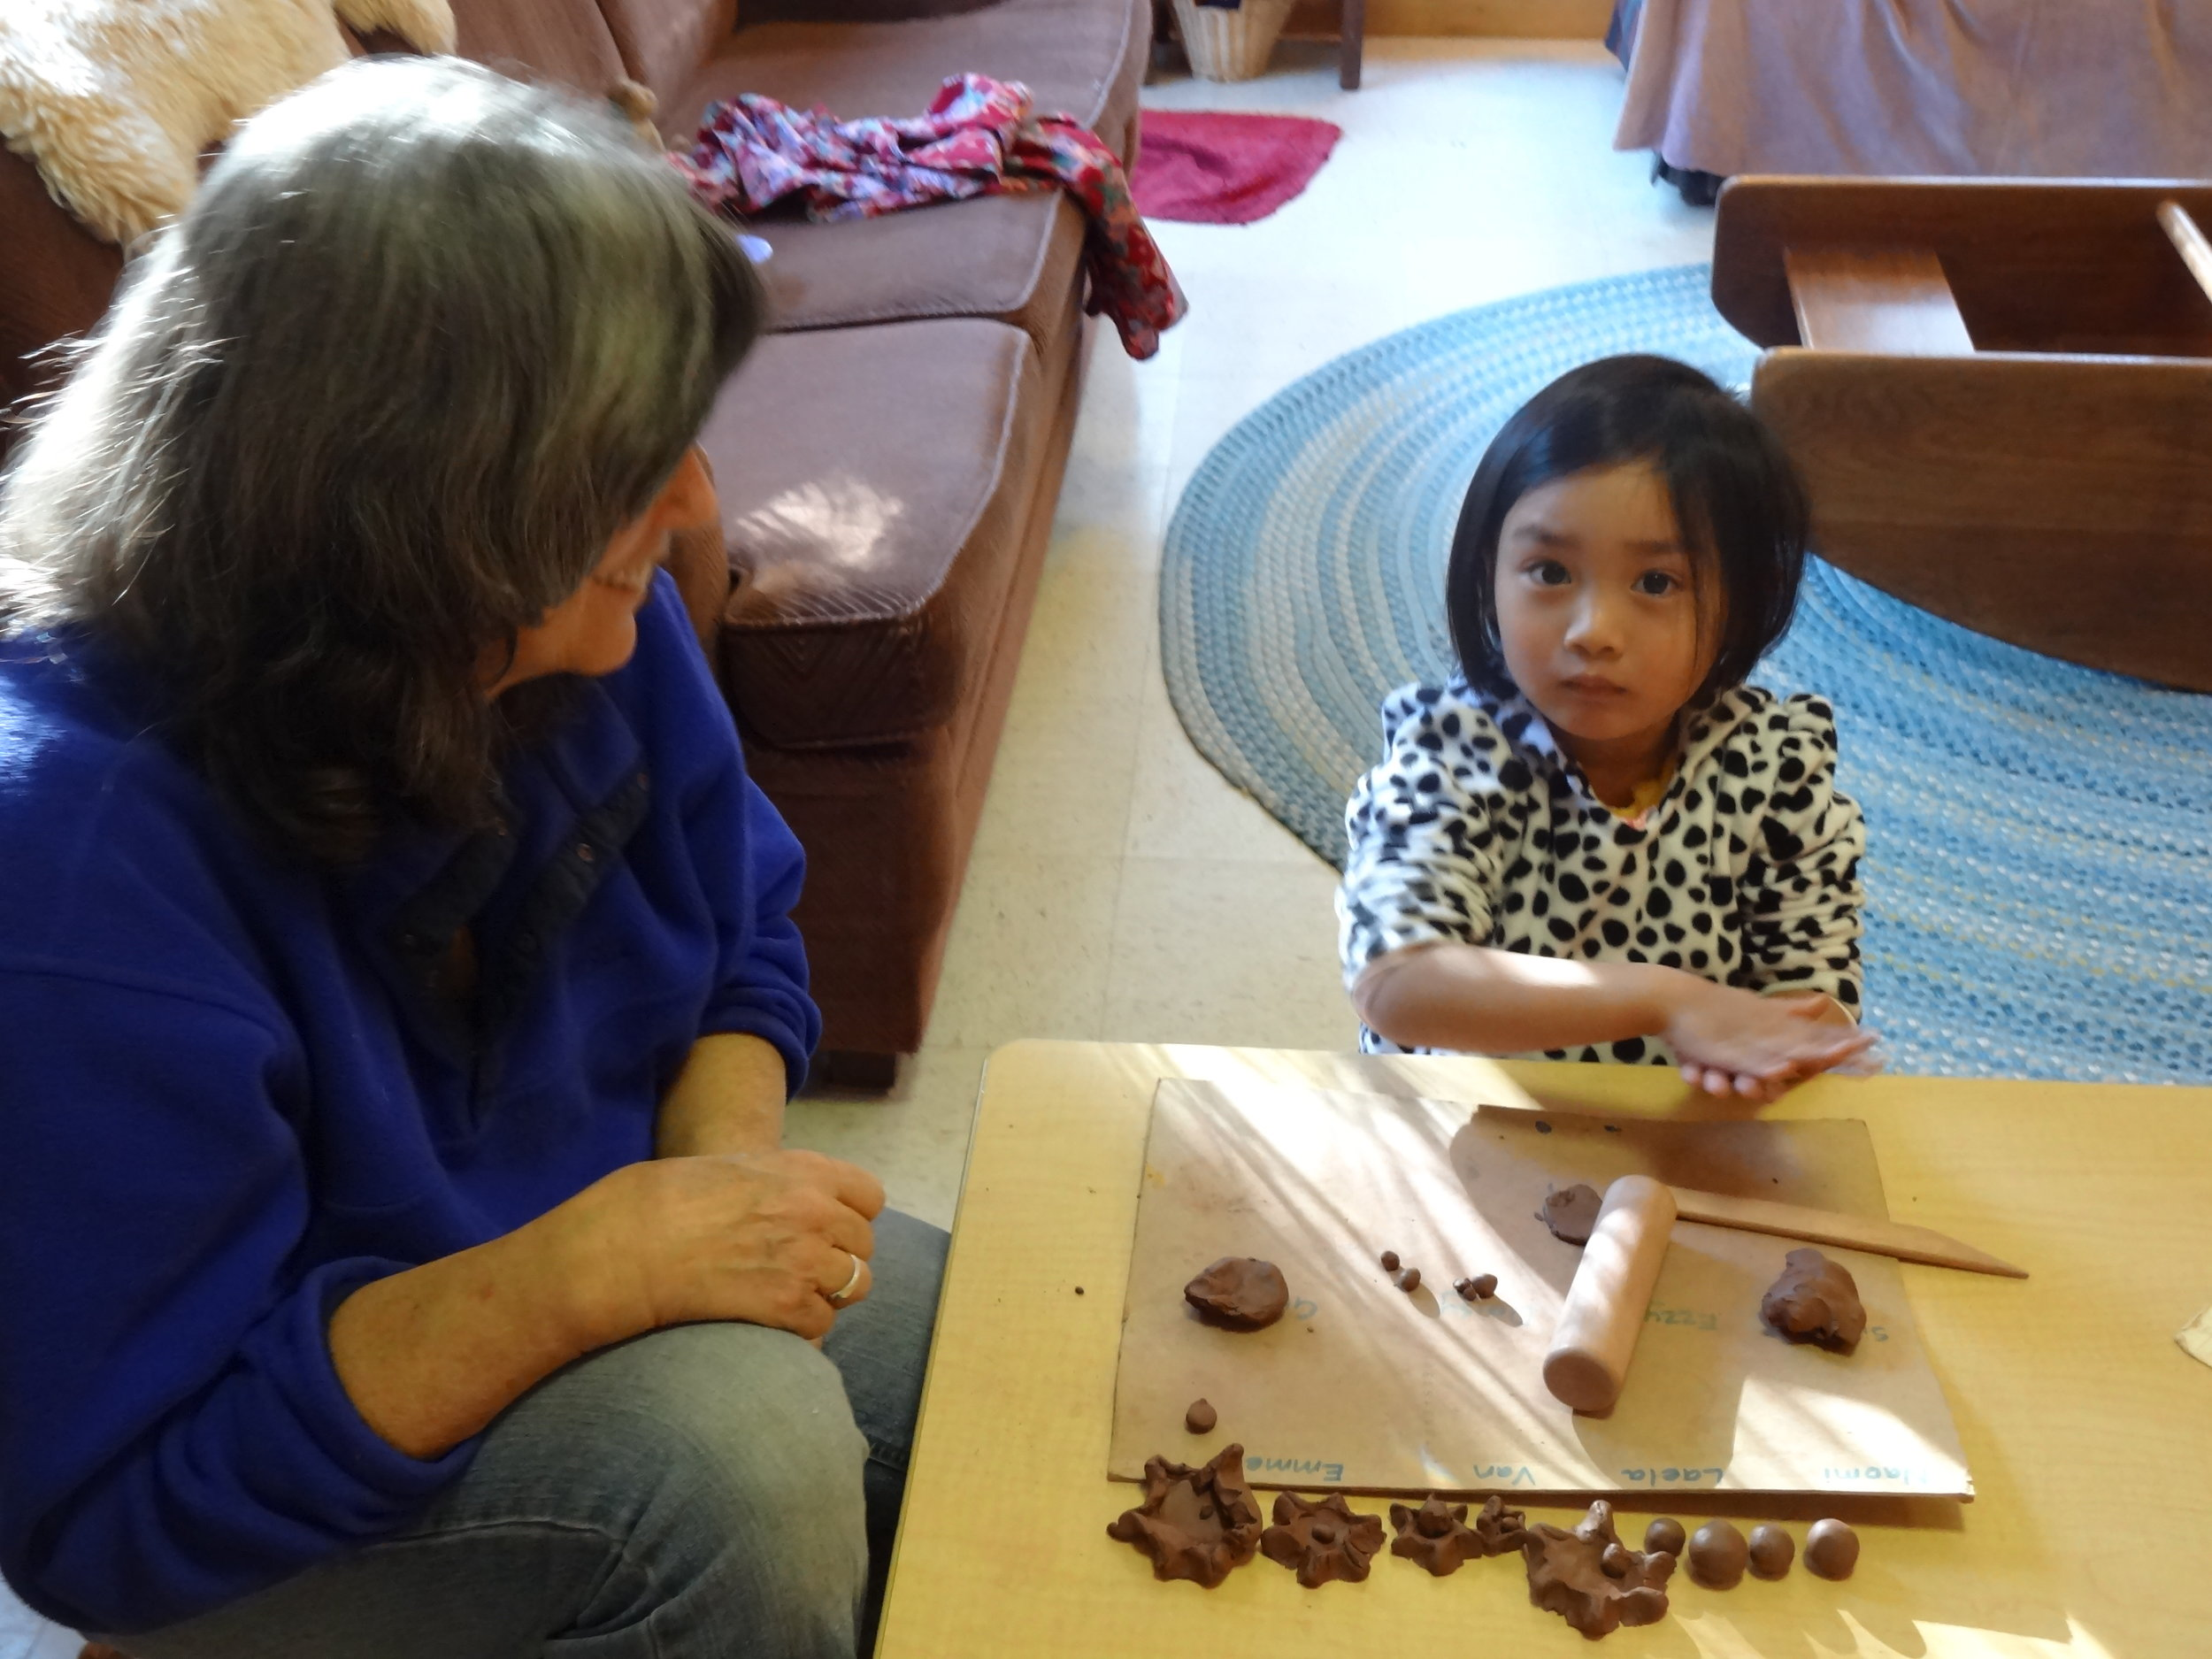 Meladee enjoyed clay project with Barb